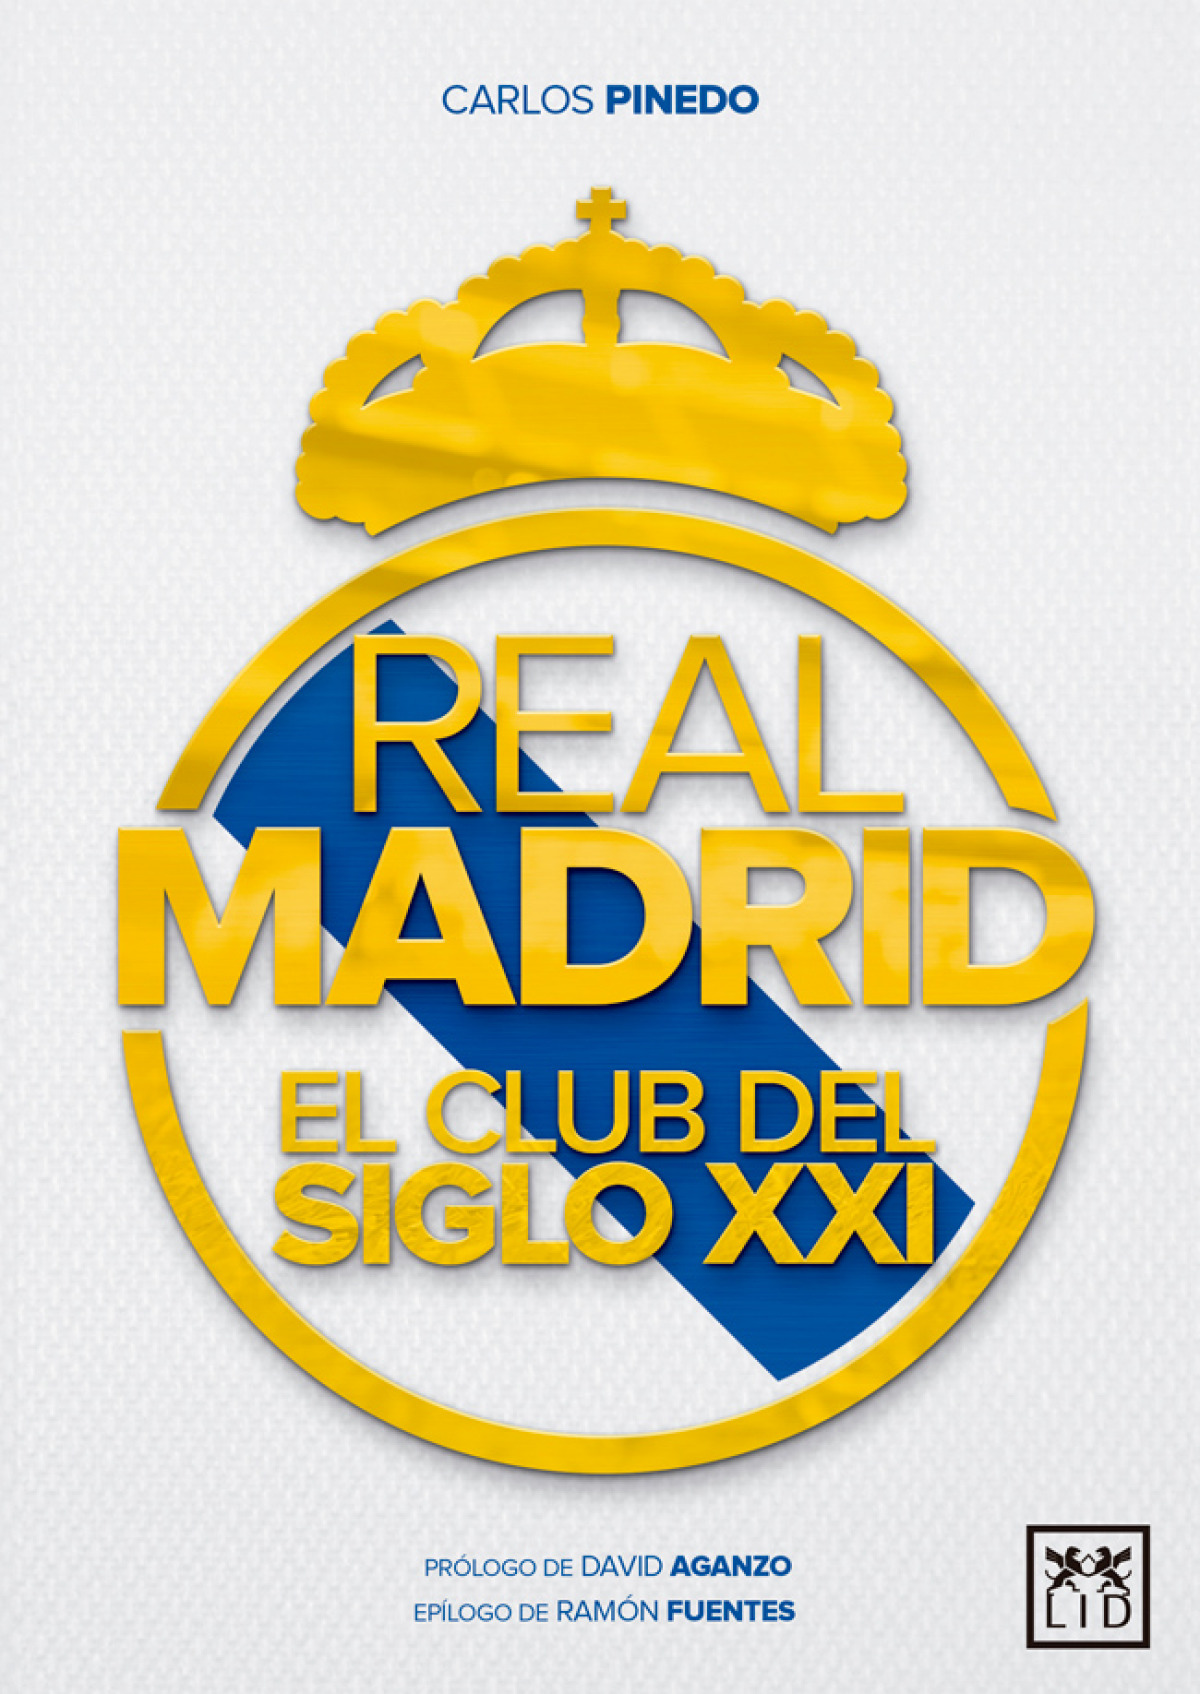 REAL MADRID, EL CLUB DEL SIGLO XXI